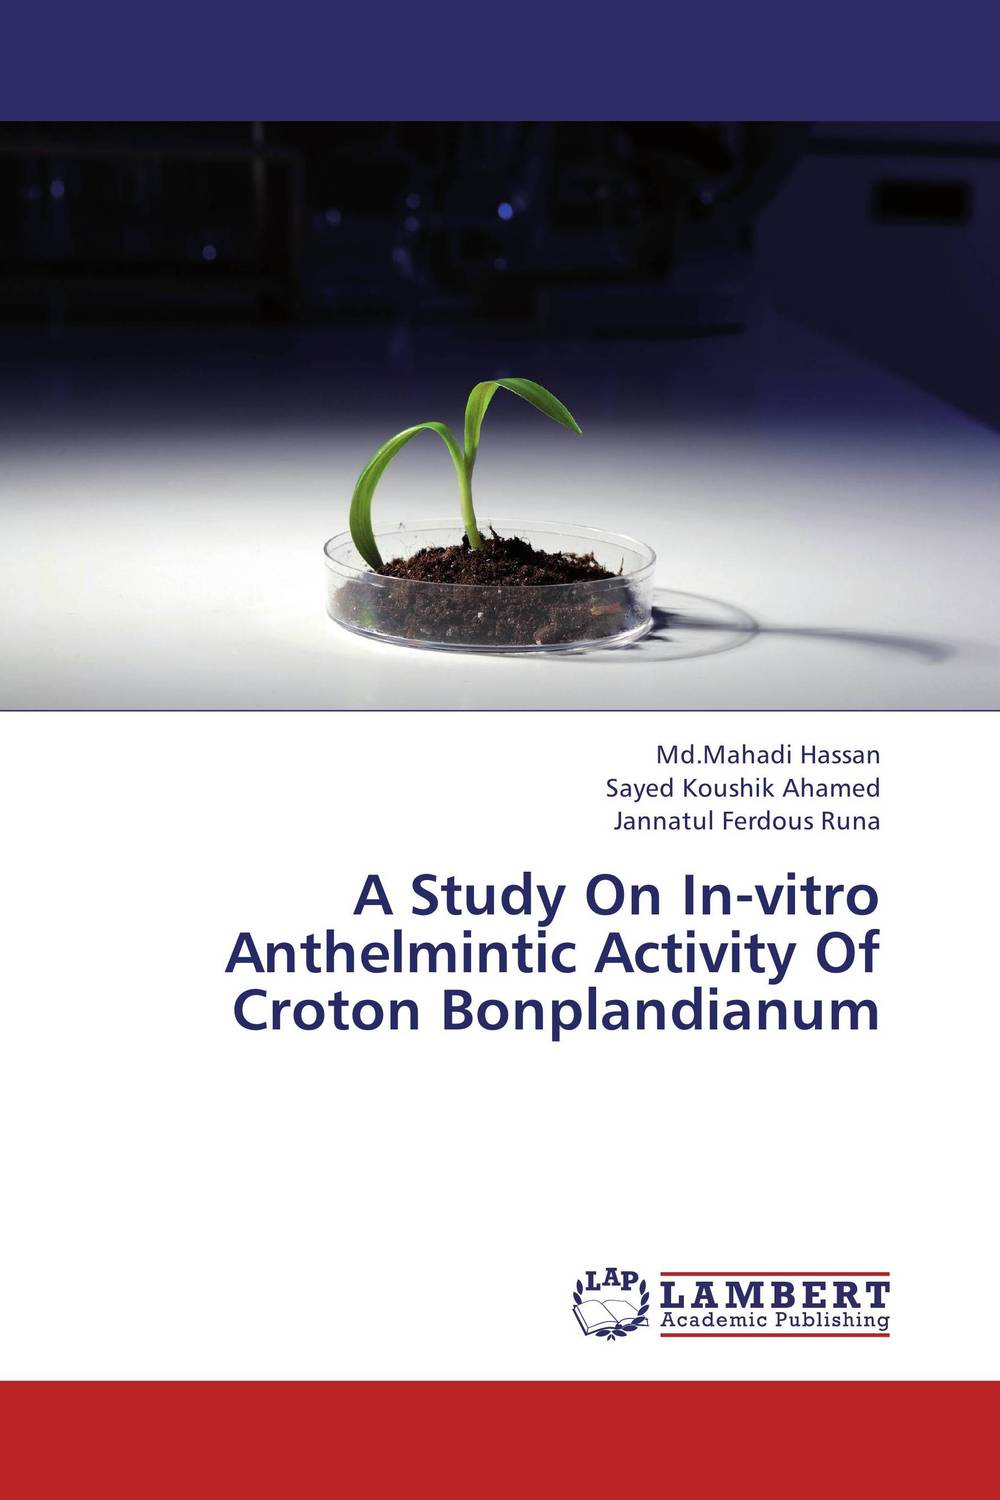 A Study On In-vitro Anthelmintic Activity Of Croton Bonplandianum discovery of natural antioxidants from sudanese medicinal plants